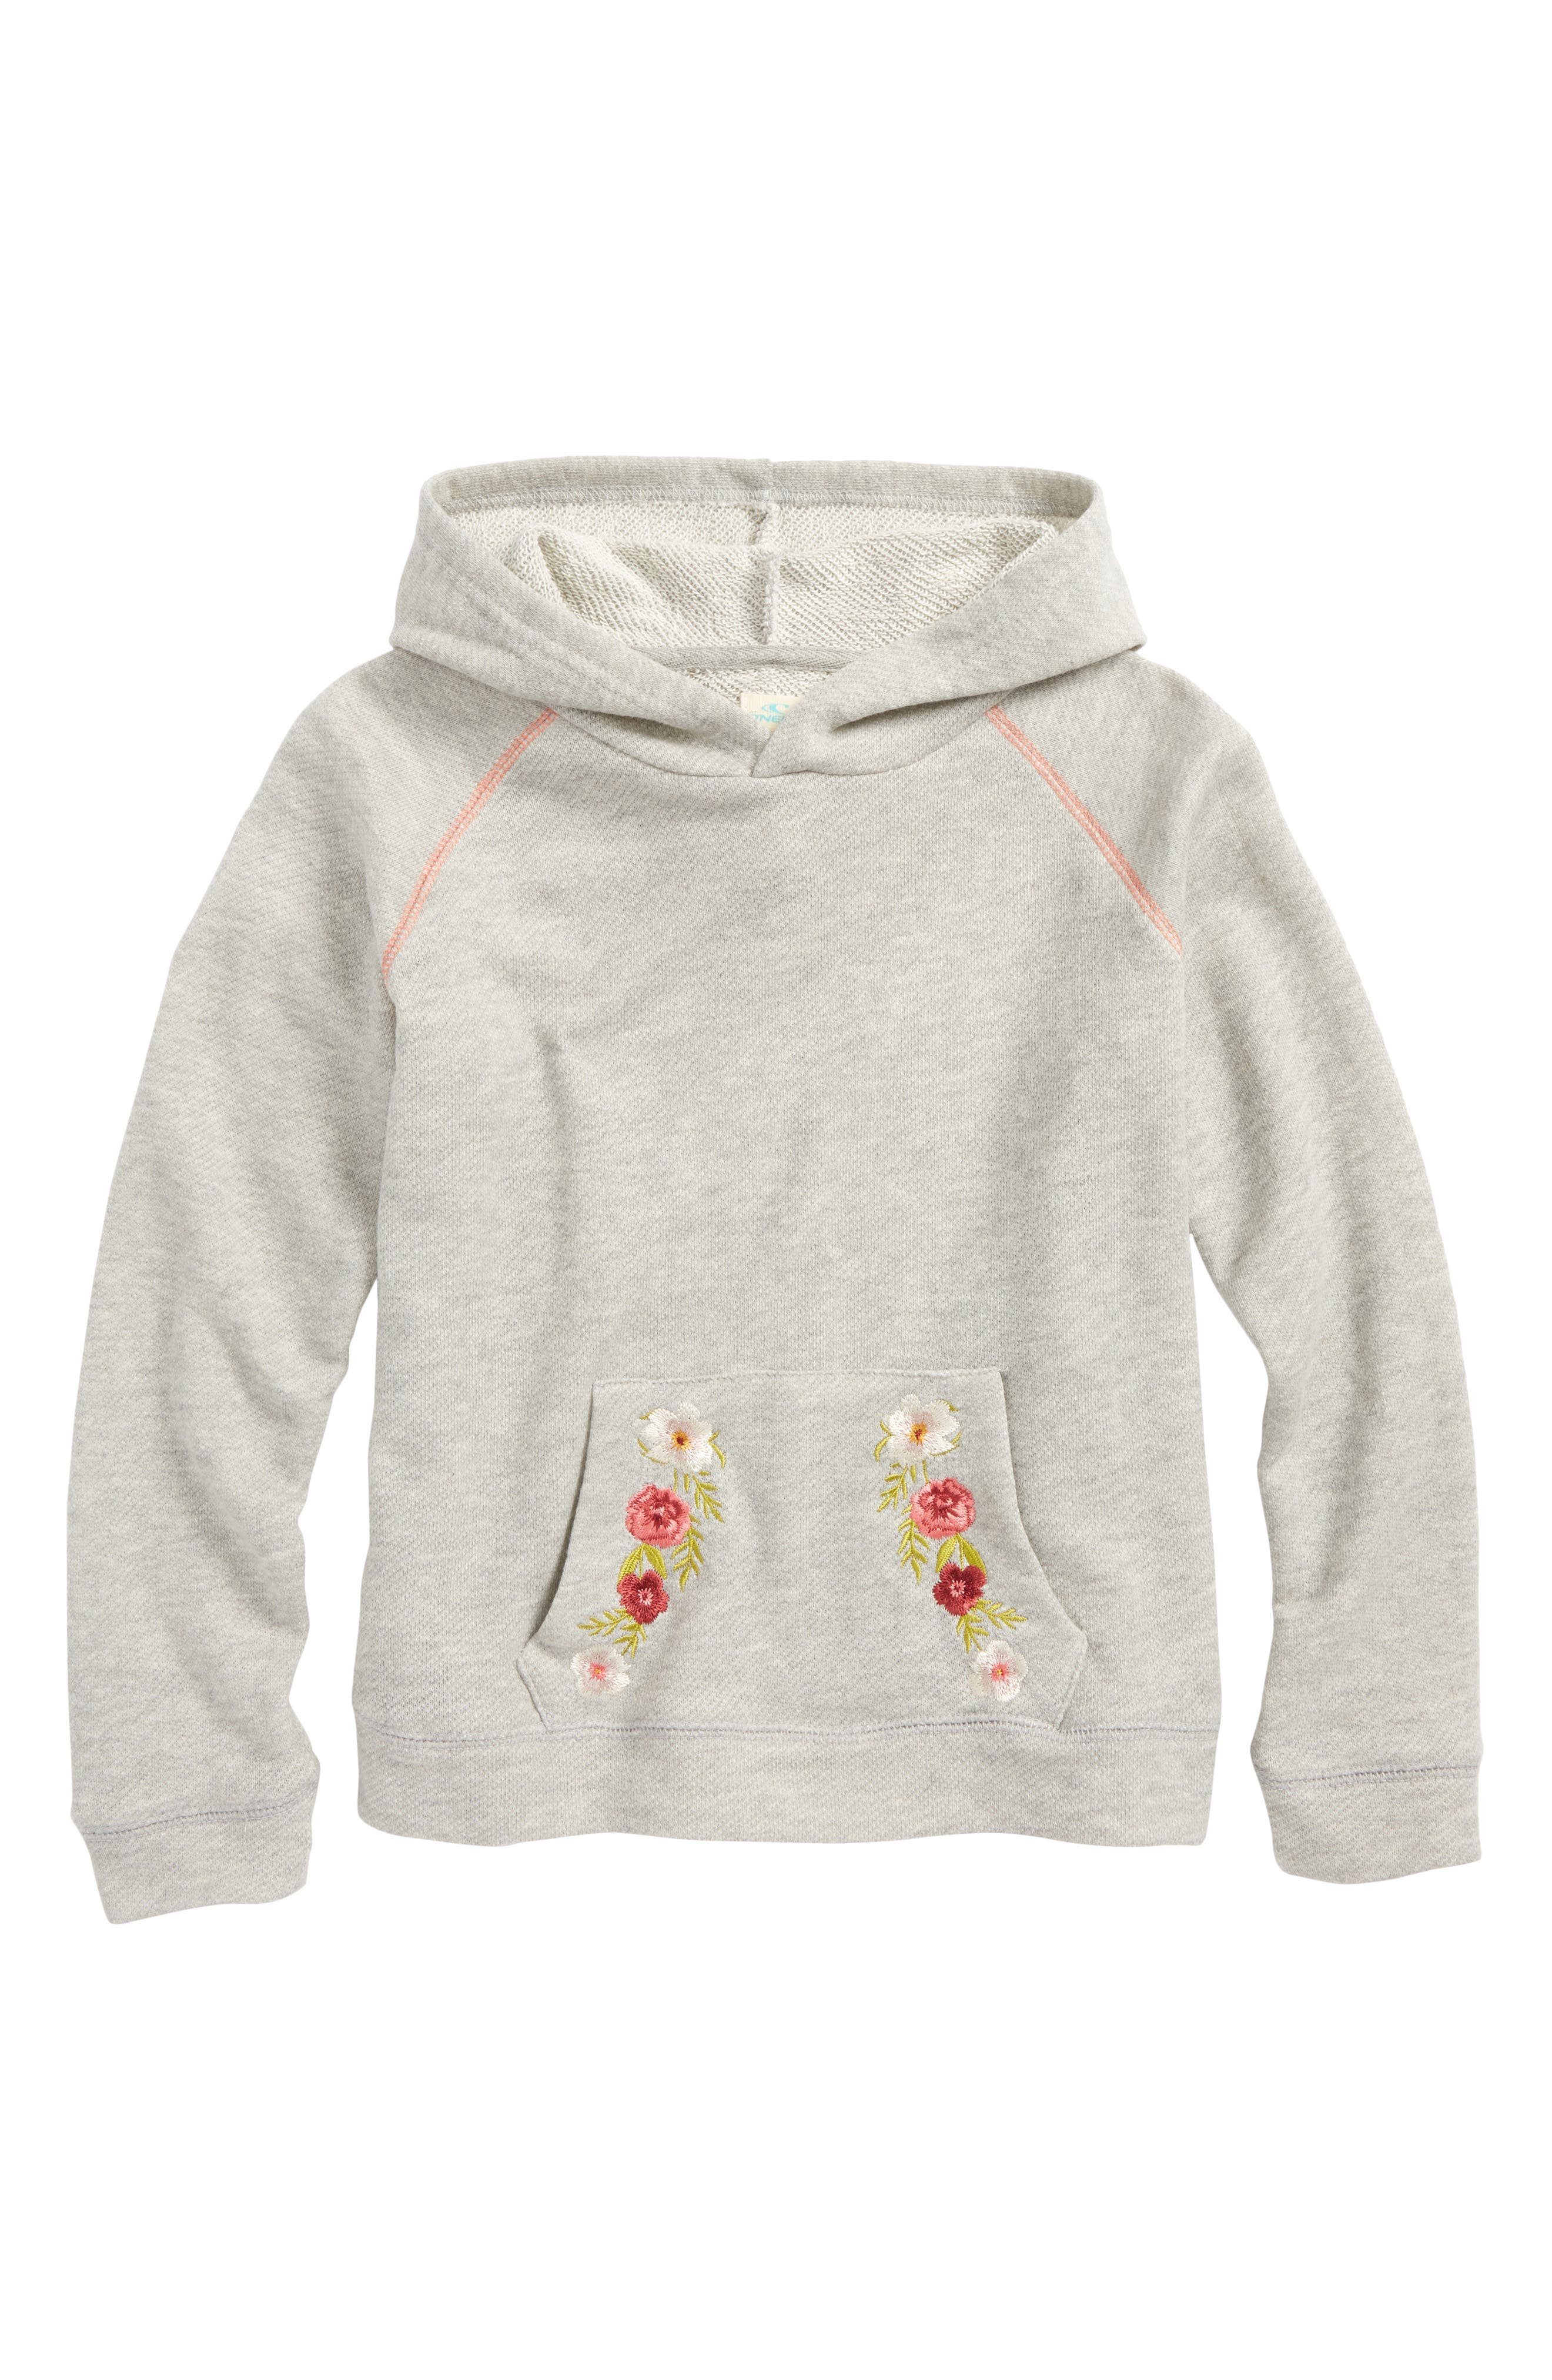 Brianna Pullover Hoodie,                             Alternate thumbnail 2, color,